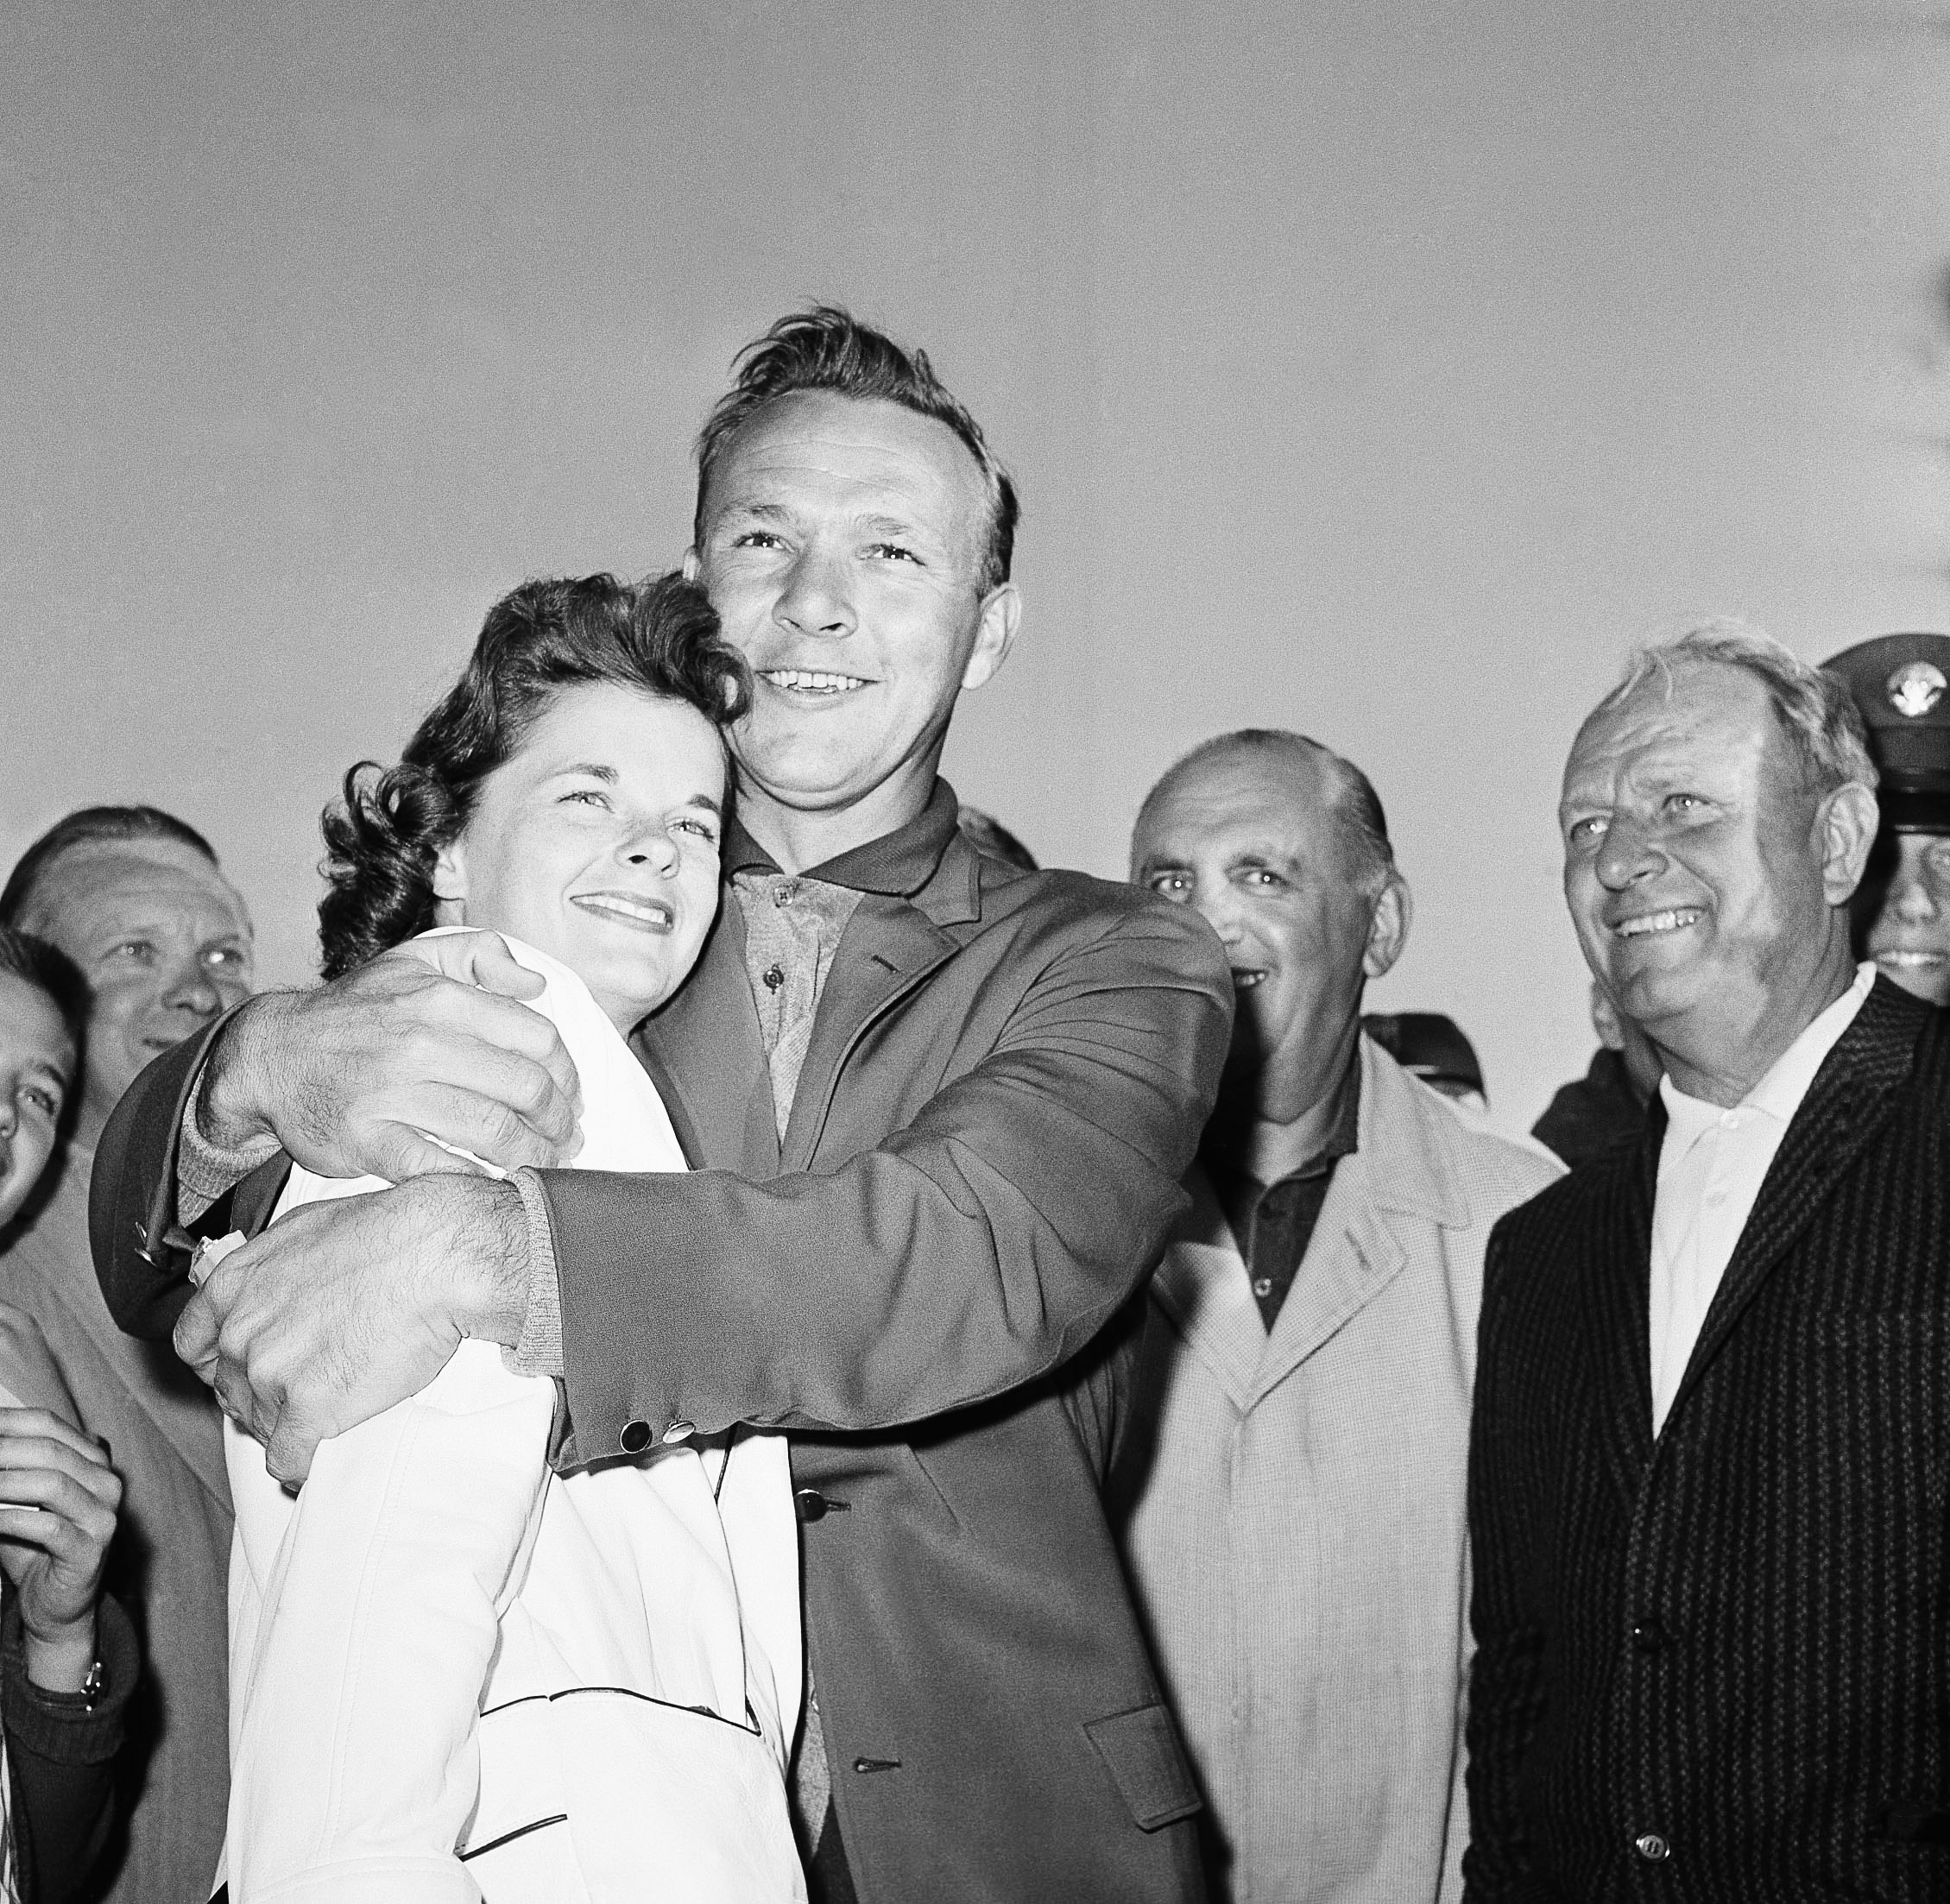 Arnold Palmer hugs his wife, Winnie, after winning the Masters Golf Tournament on April 10, 1960 in Augusta, Ga.